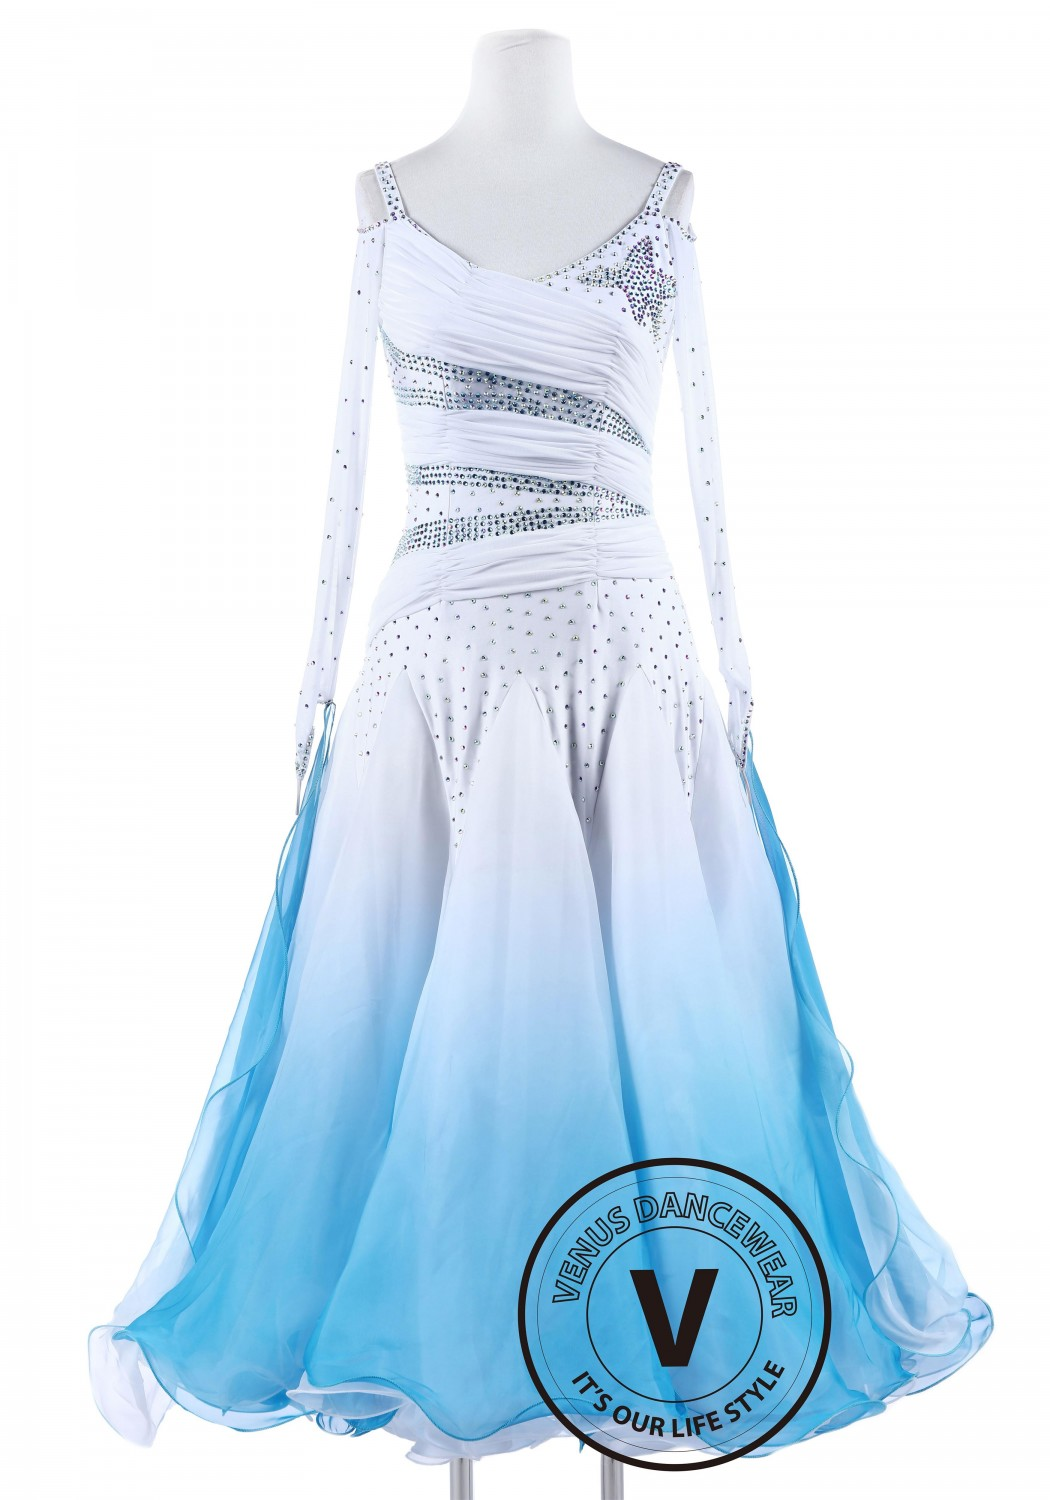 White and Blue Gradational Ballroom Competition Standard Waltz Smooth Foxtrot Women Dance Dress Collection